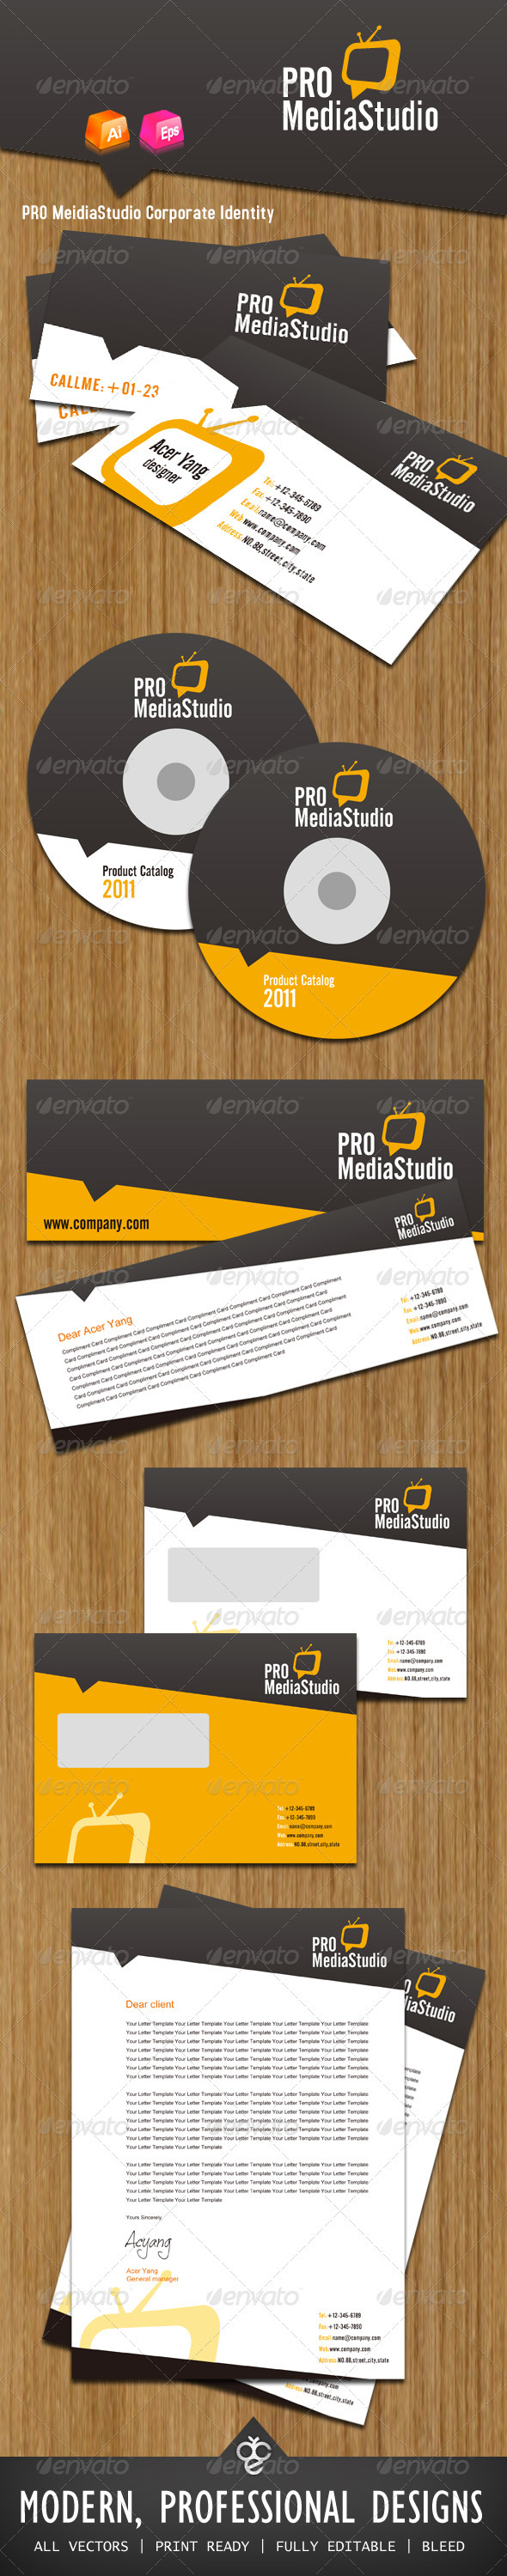 PRO MeidiaStudio Corporate Identity - Stationery Print Templates